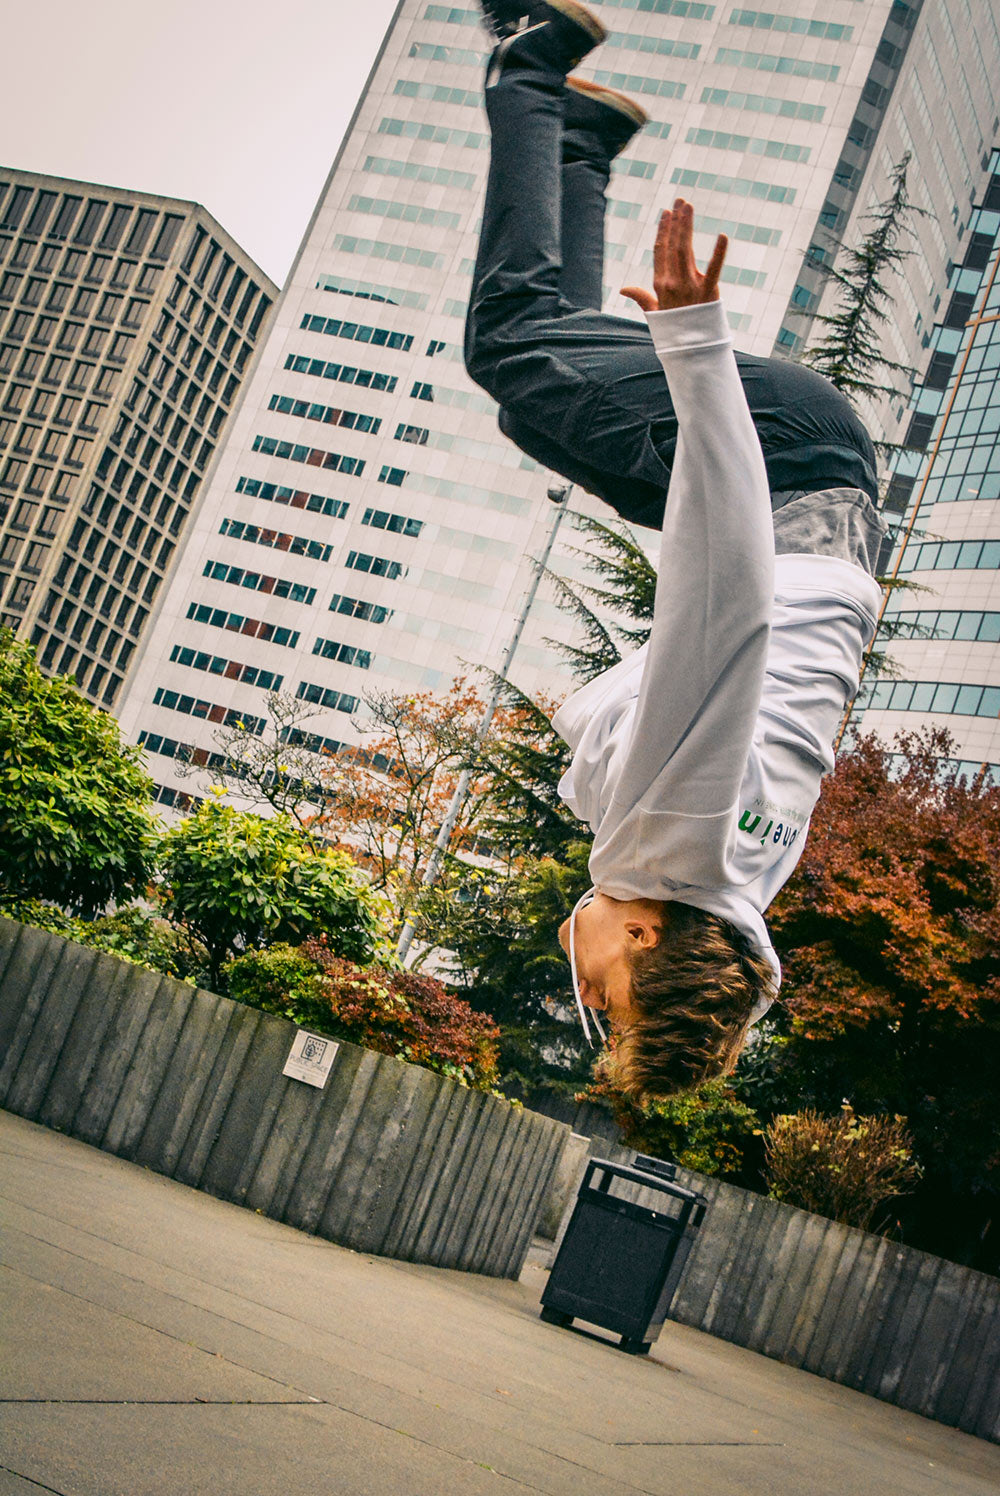 Parkour Athlete, by Gibran Hamdan Seattle photographer